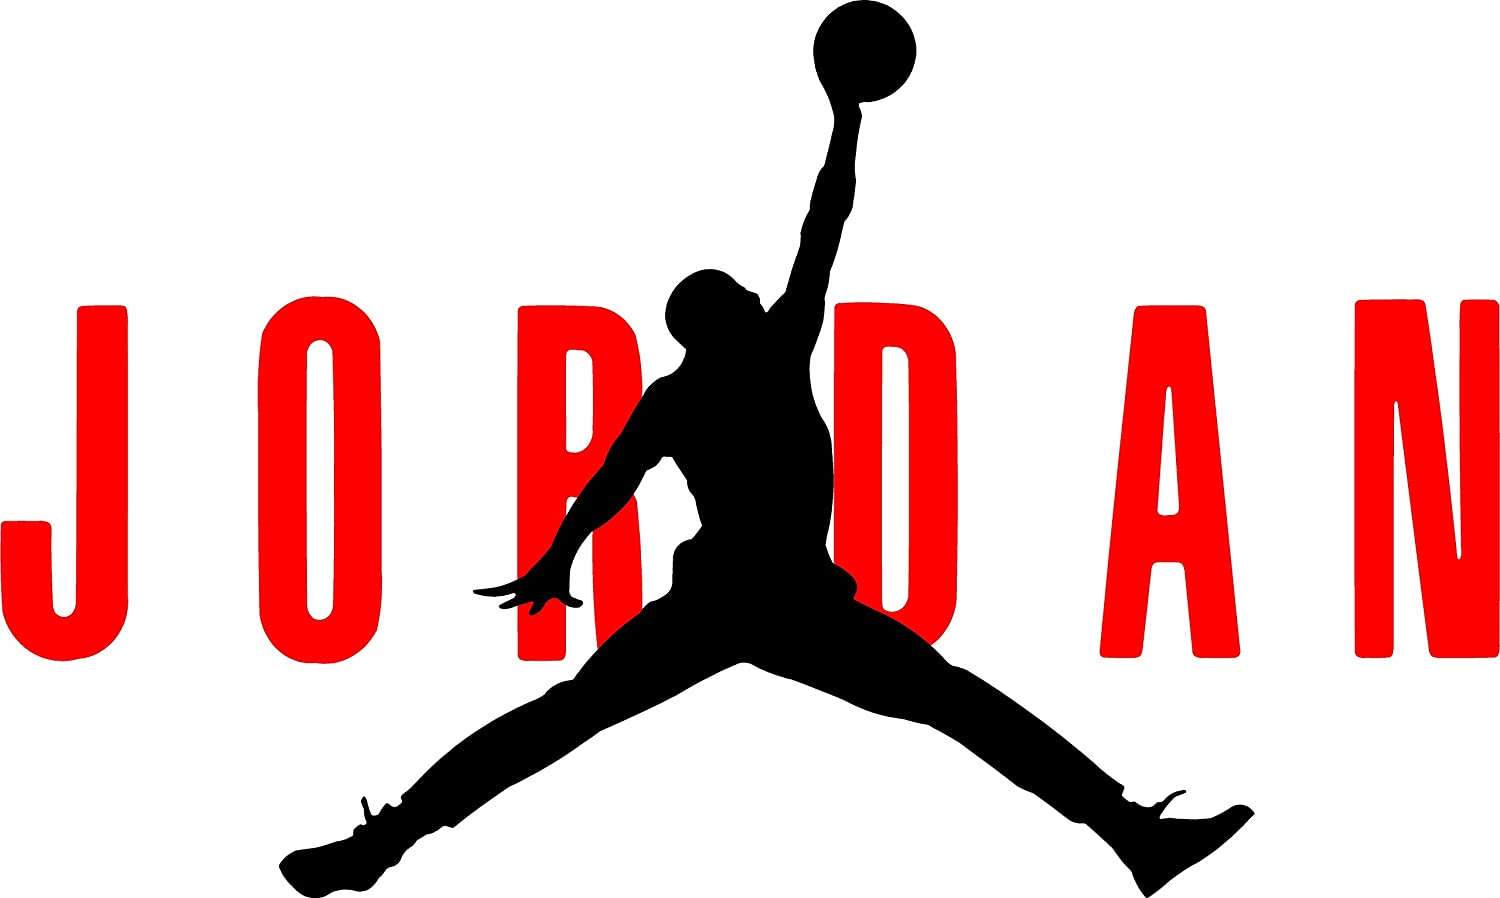 Contestar el teléfono Cierto agradable  AIR Jordan Flight 23 Jumpman Logo NBA Huge Vinyl Decal Sticker for Wall Car  Room Windows (23